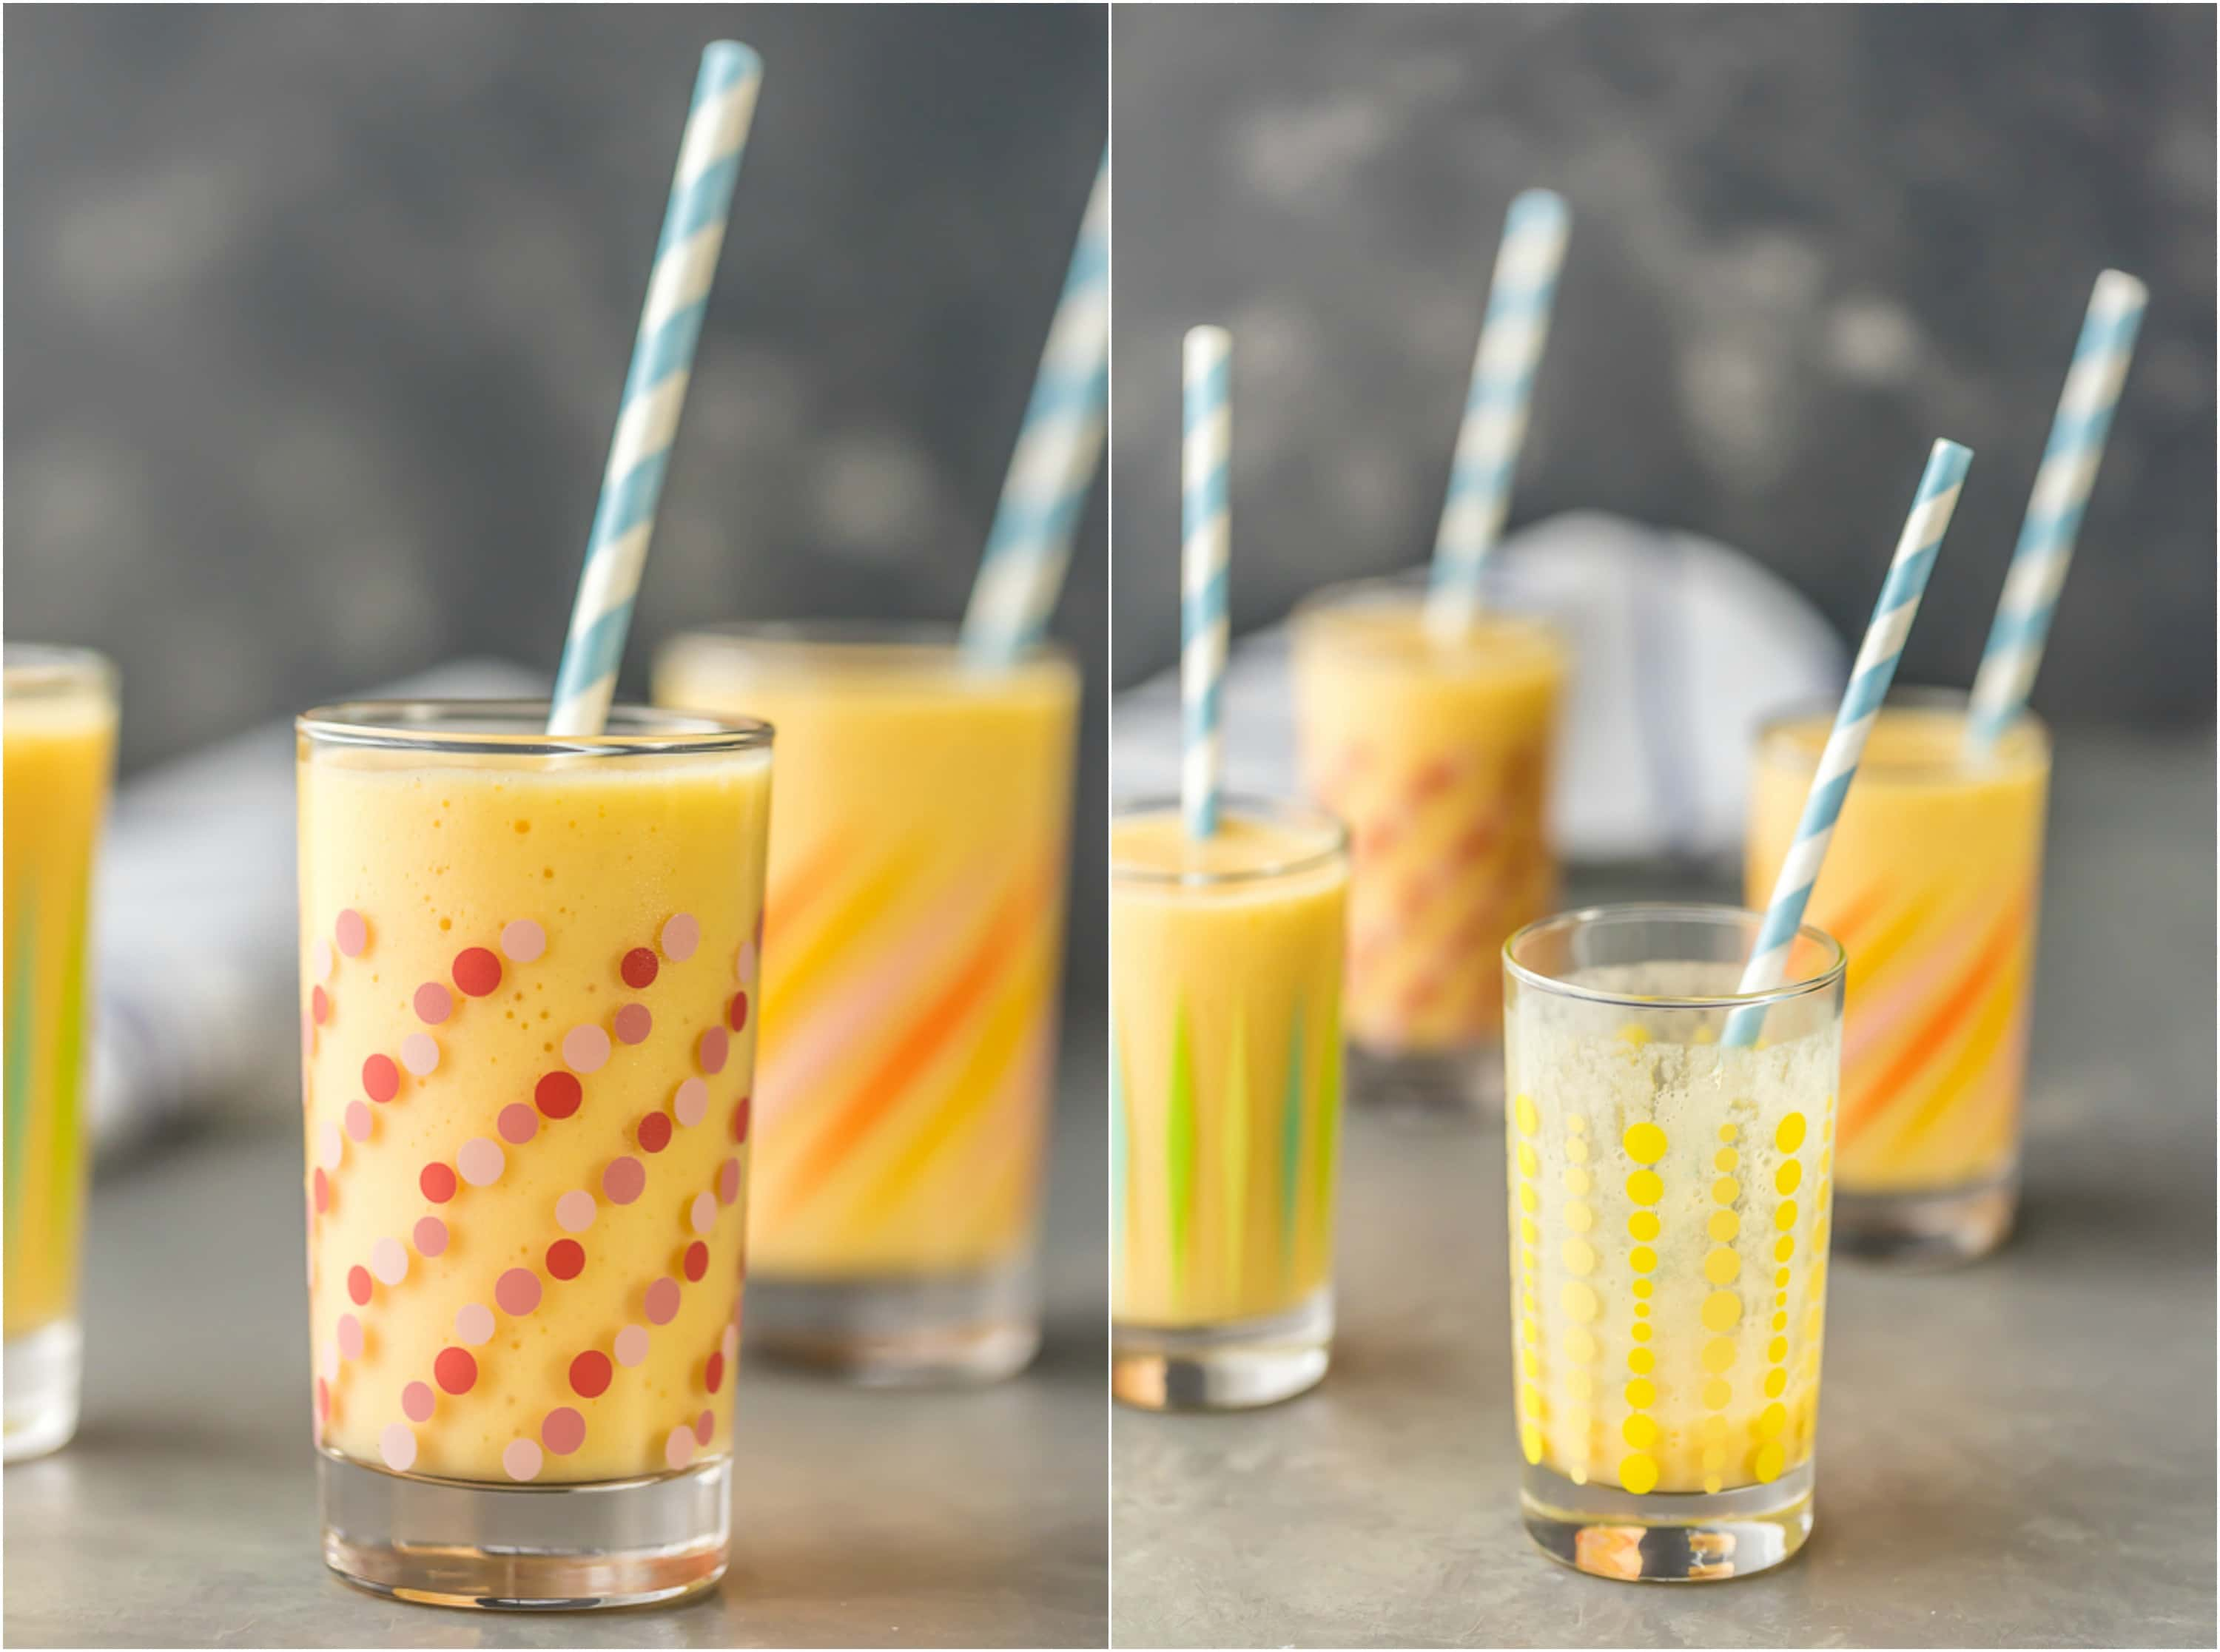 Simple Mango Smoothie made with milk, frozen mango, and honey! Super easy, quick, delicious, and healthy recipe. Perfect for breakfast or anytime you need a sweet treat!